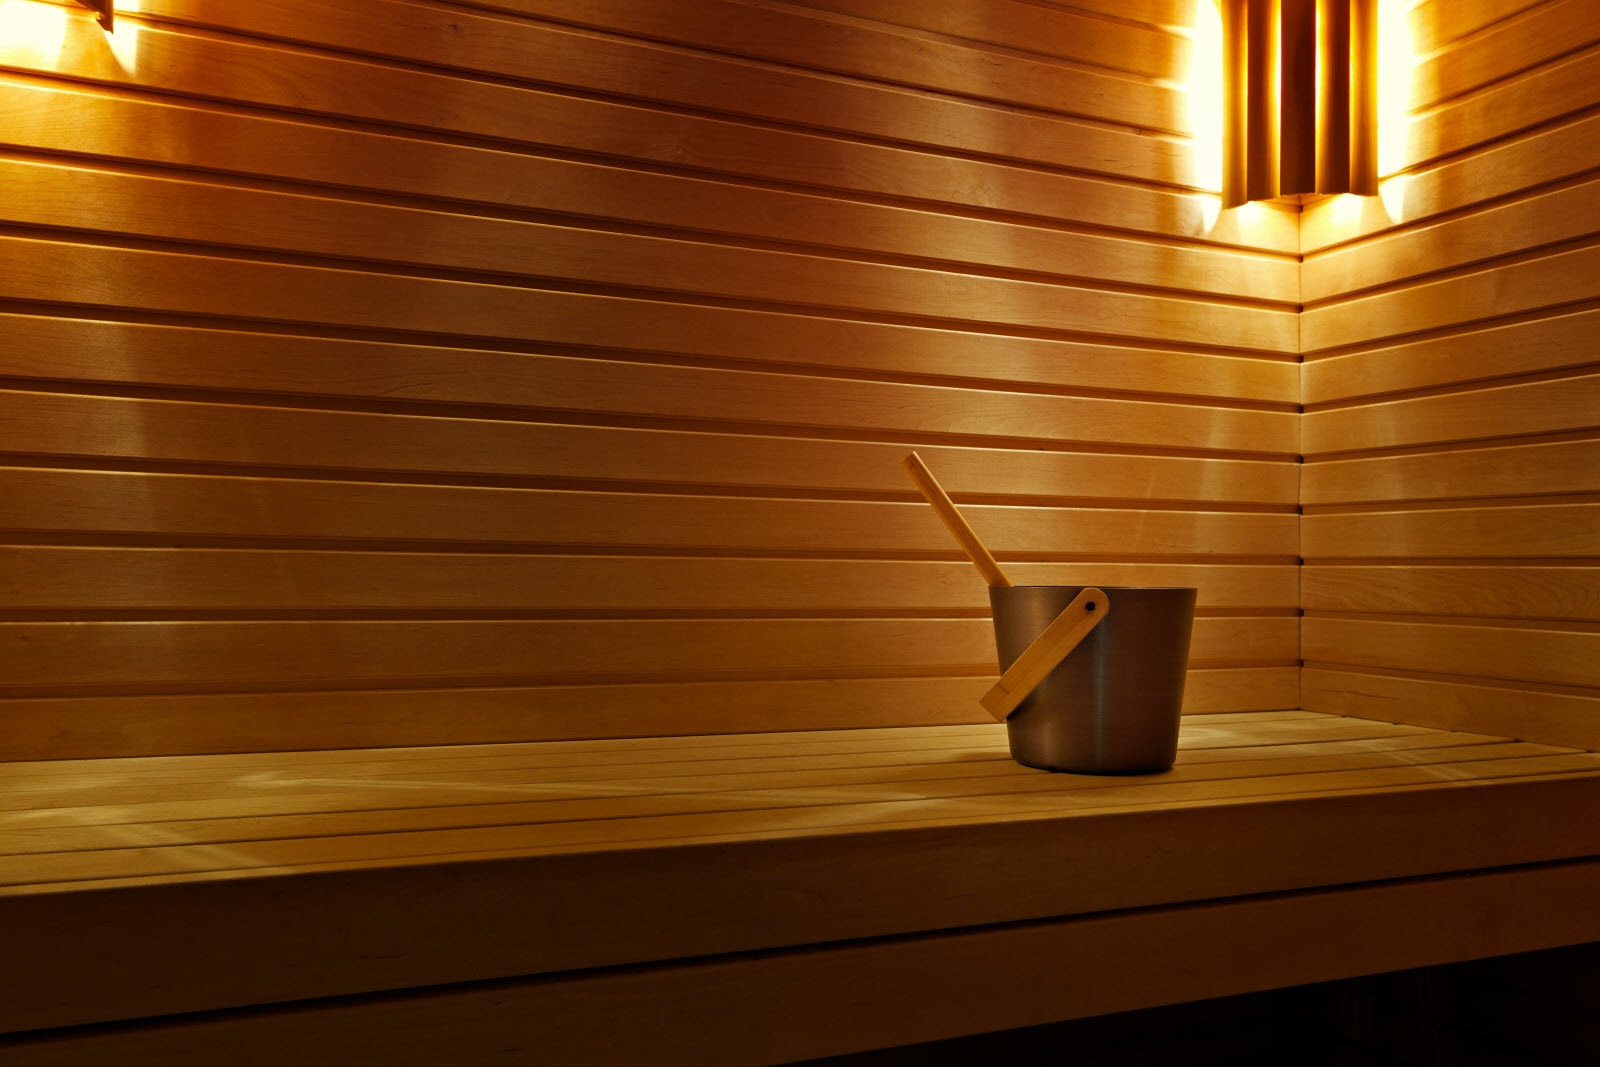 Relaxation Area, Spa, Sauna